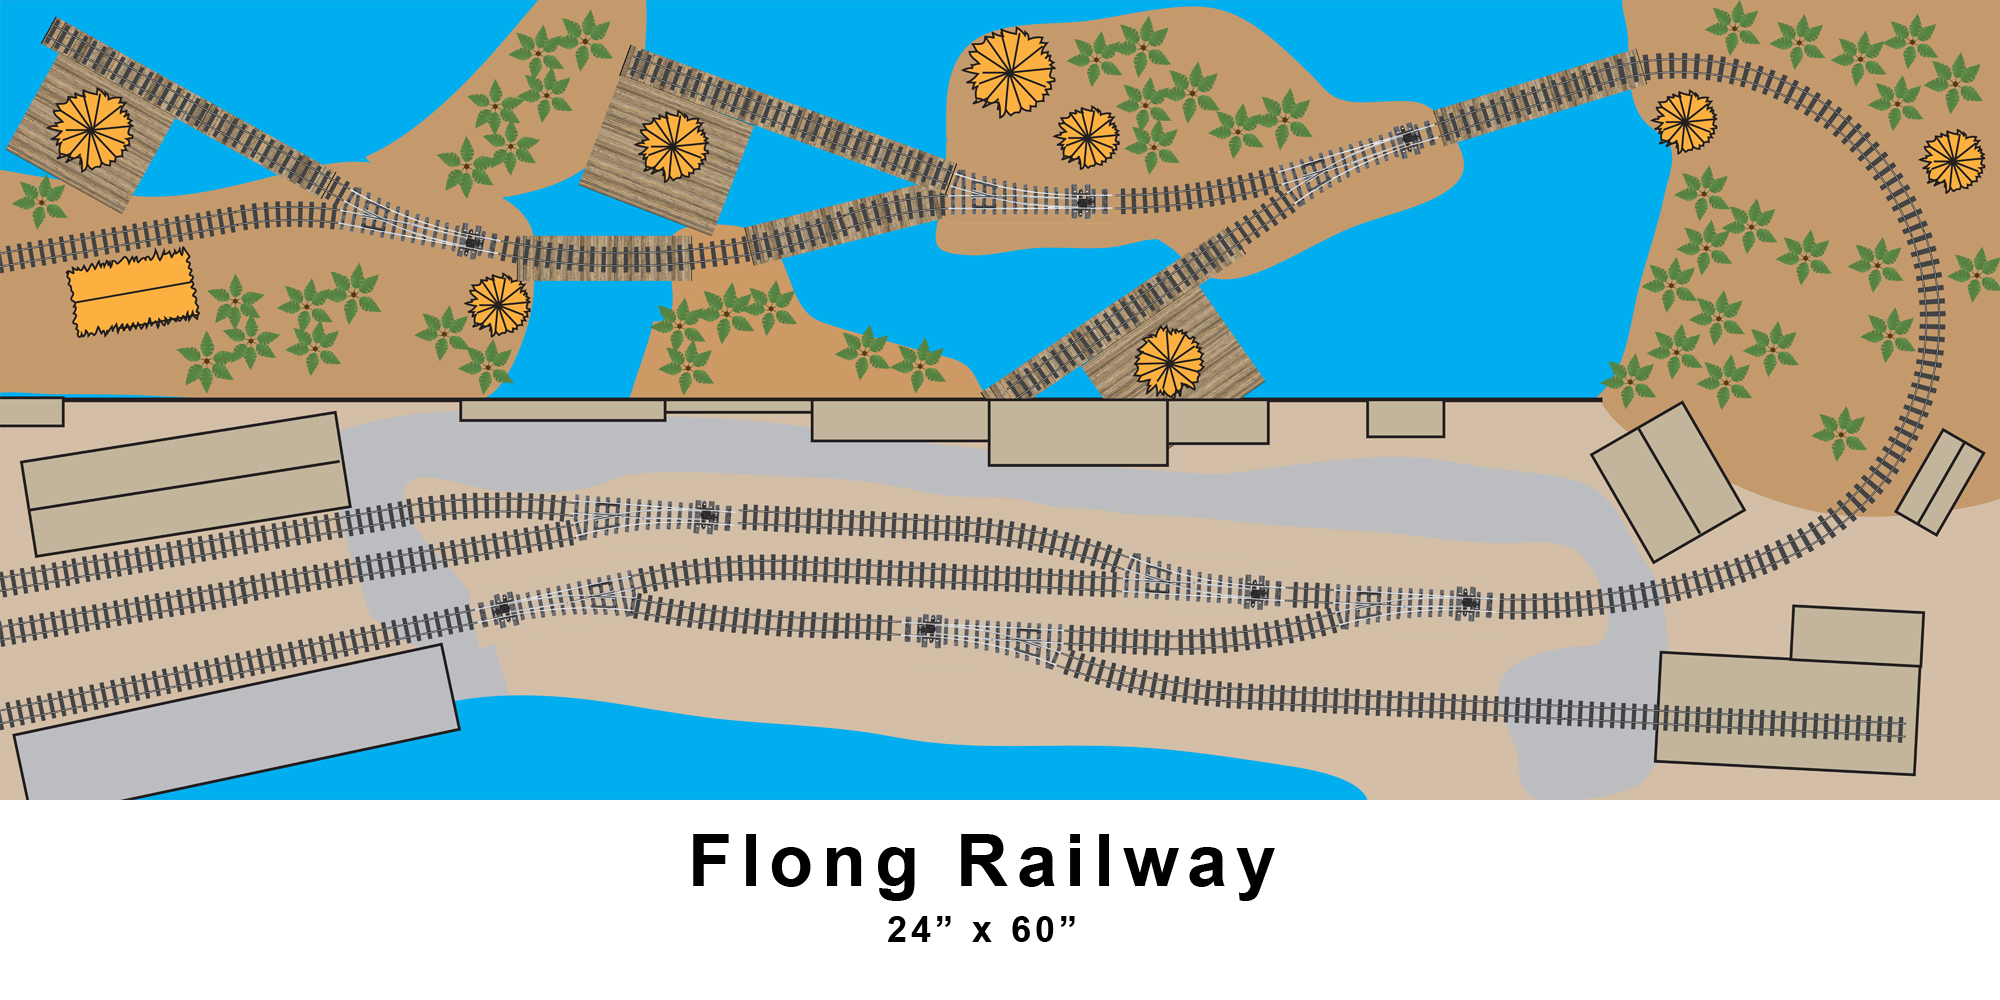 Small Layout Ideas The Flong Railway Model Railroads